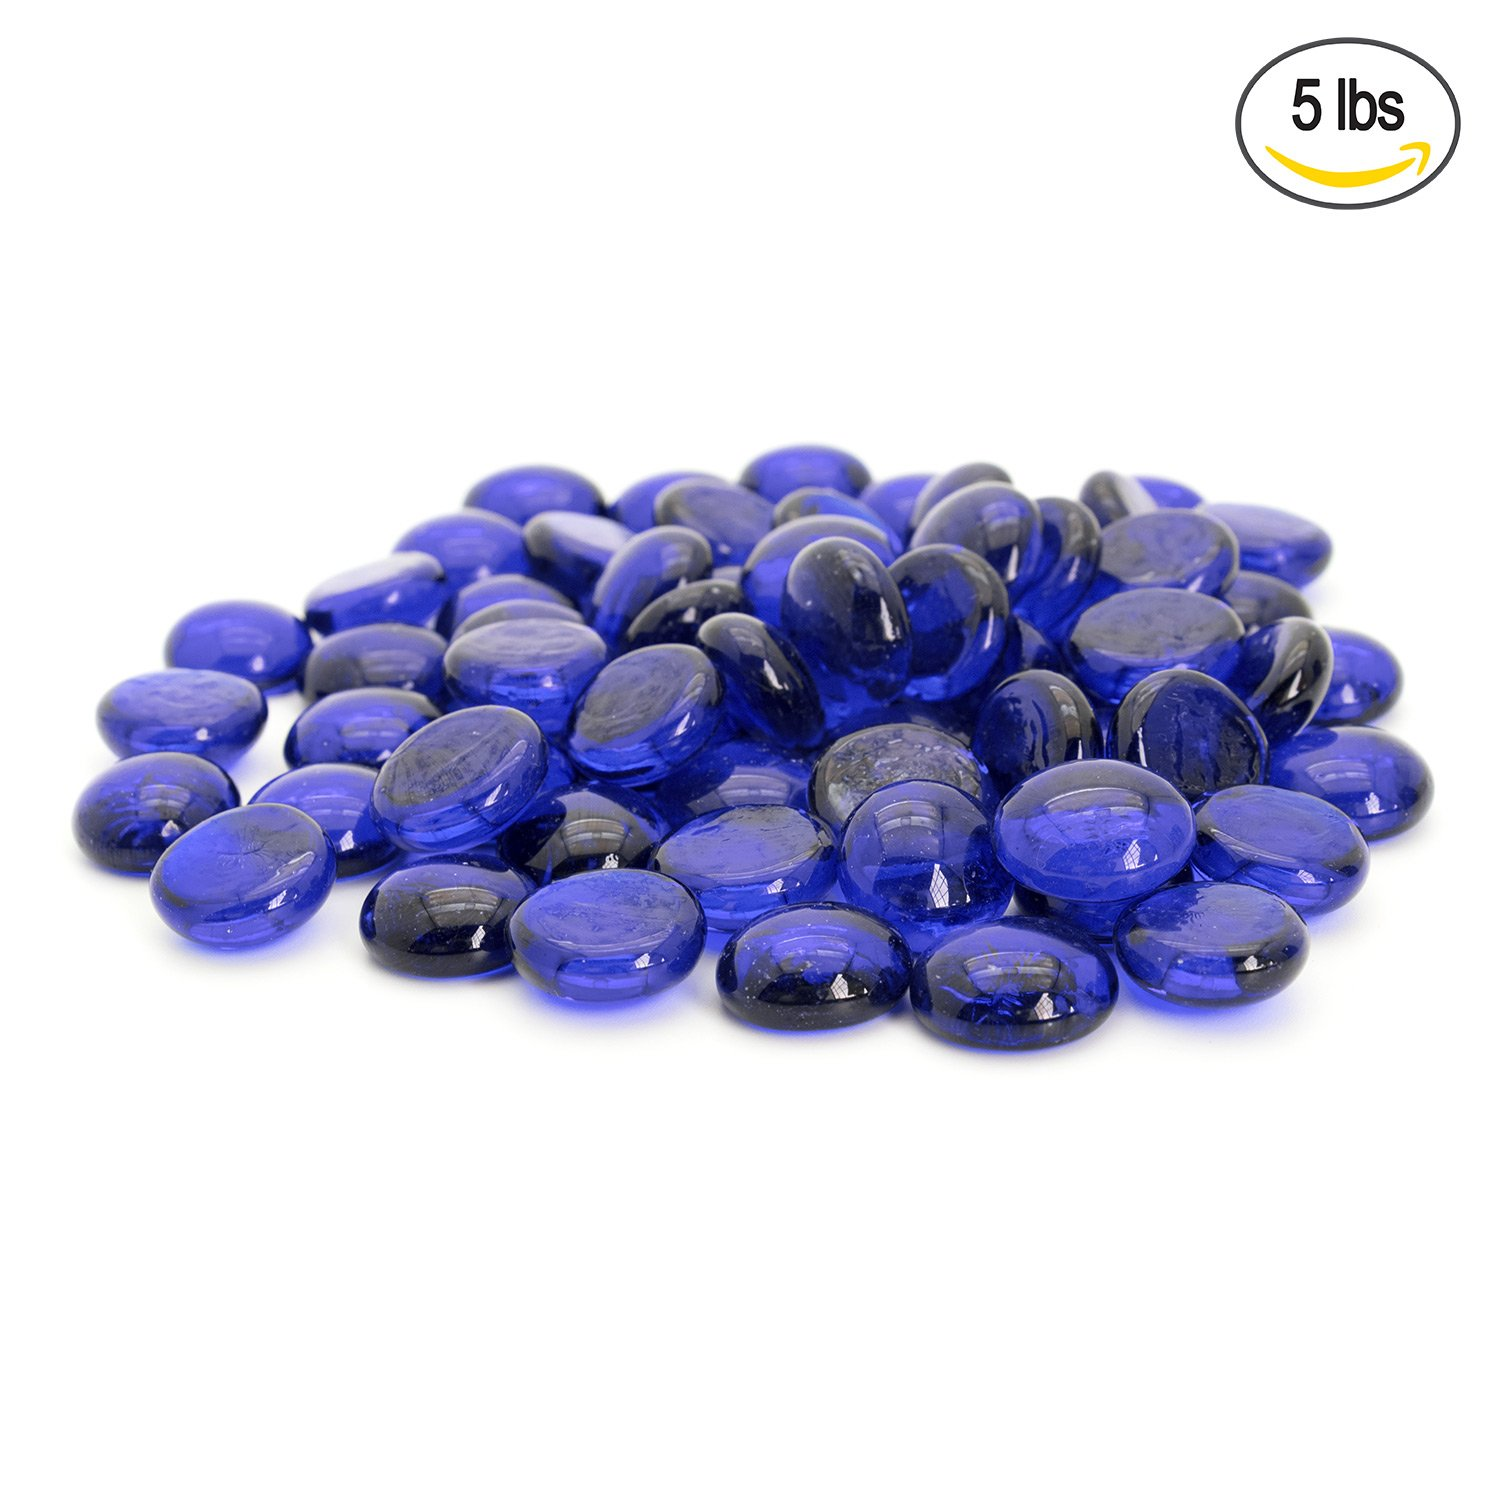 Amazon flat clear marbles pebbles 5 pound bag for vase blue flat marbles pebbles glass gems for vase fillers party table scatter reviewsmspy